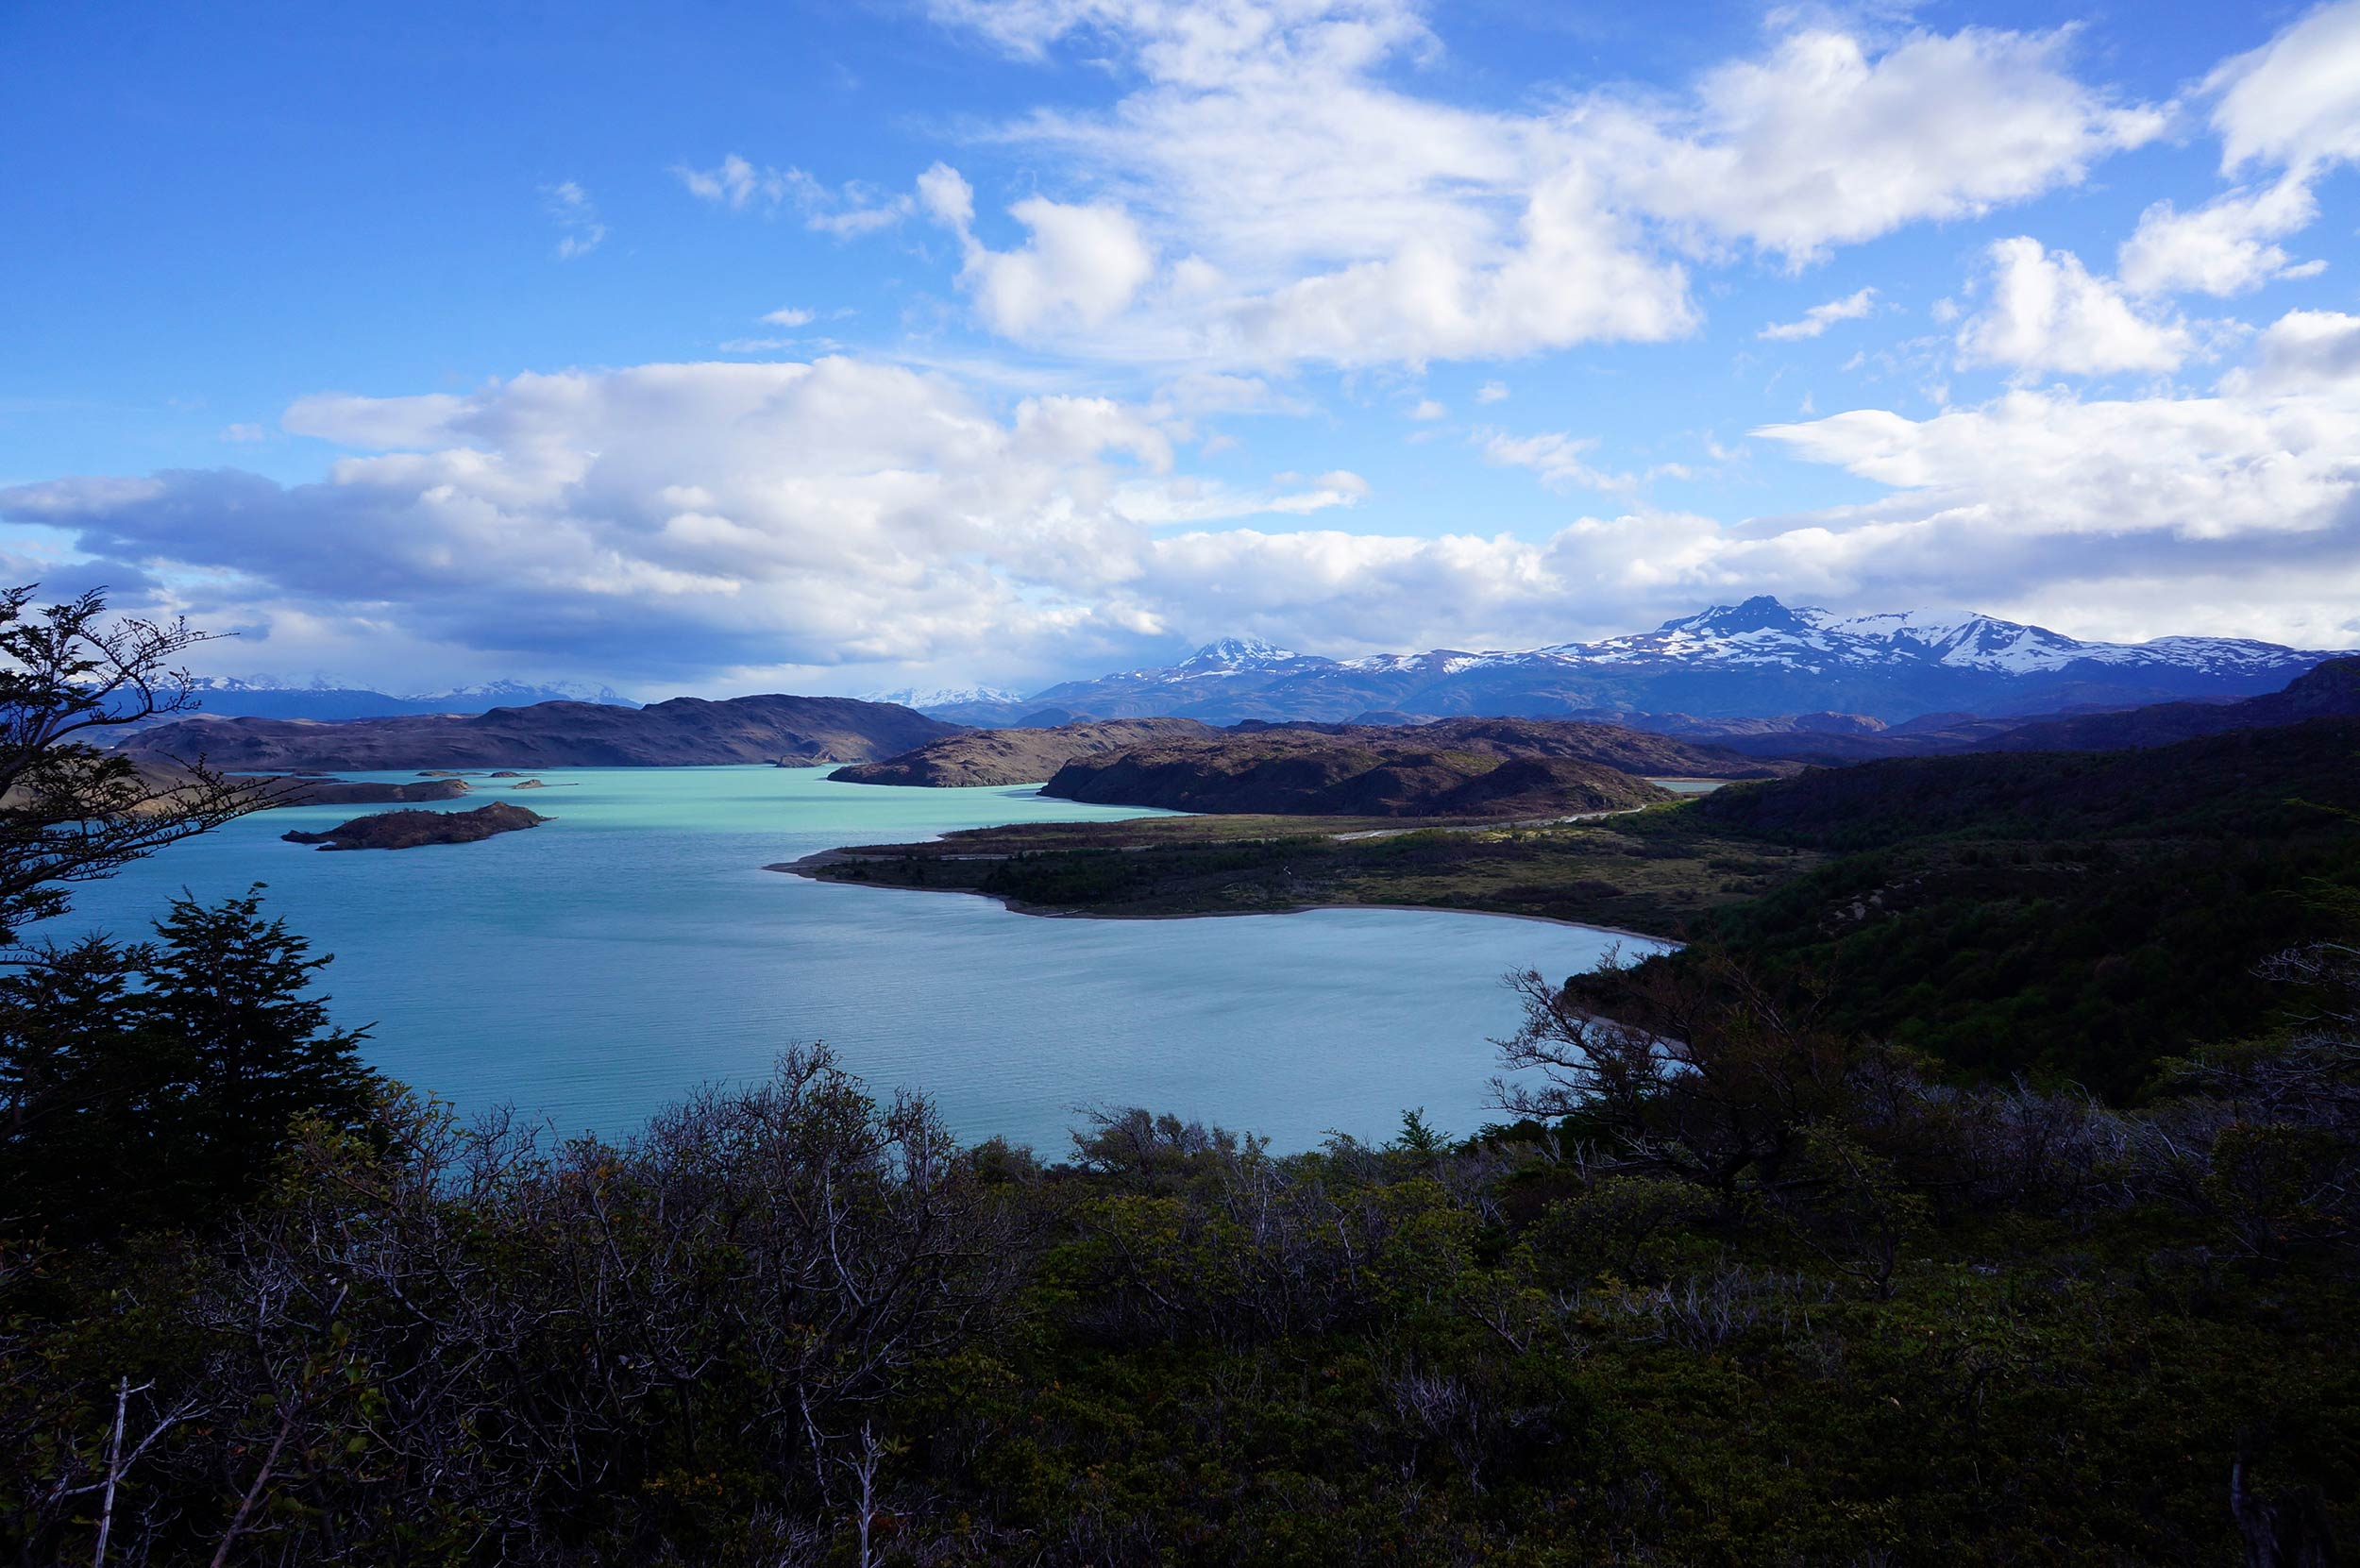 torres_del_paine_w_trek_lake.jpg